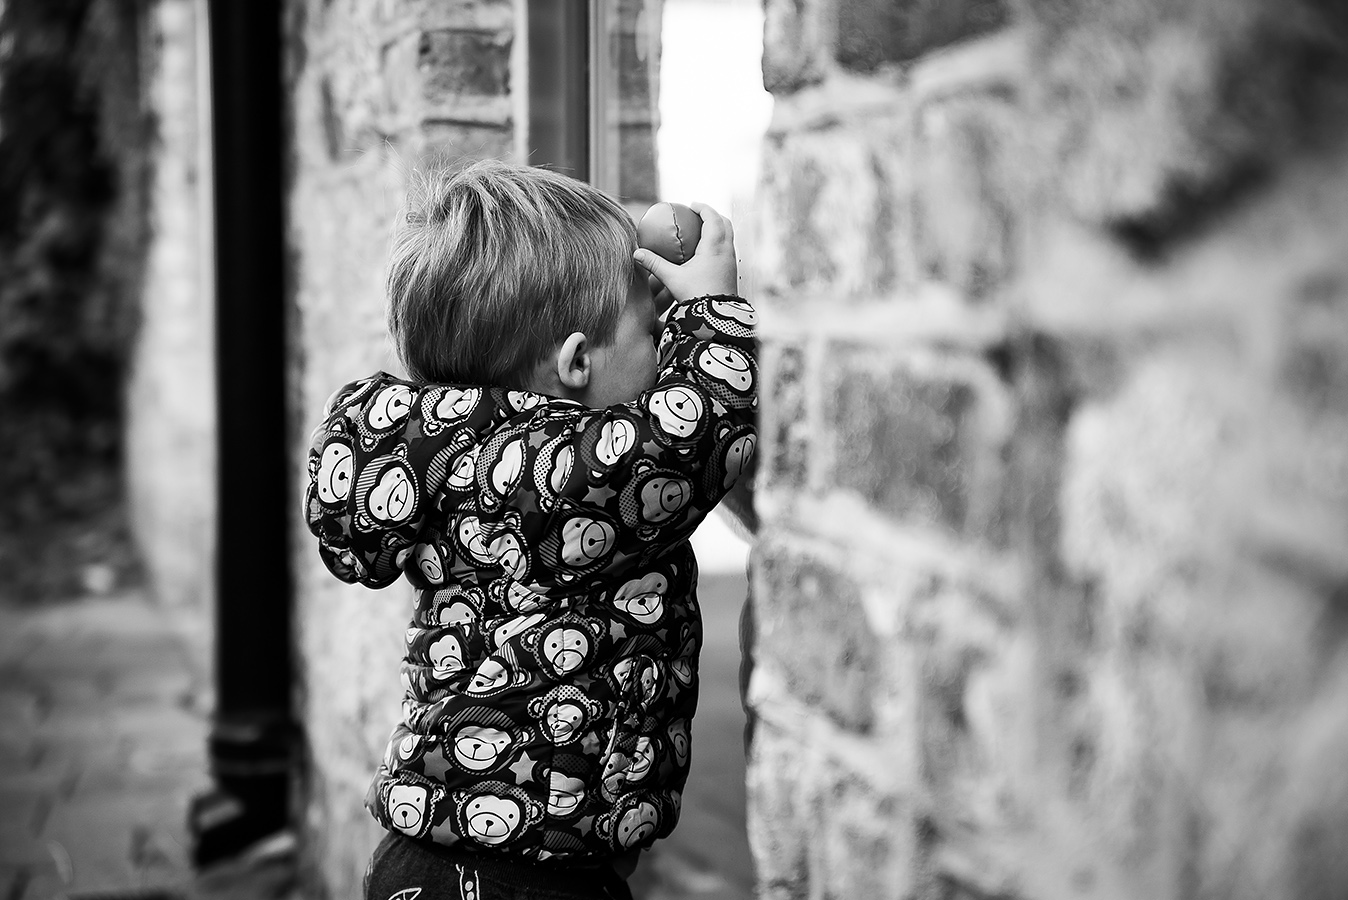 Playing Hide and Seek - Family Photoshoot at Marlay Park in Dublin by Camila Lee